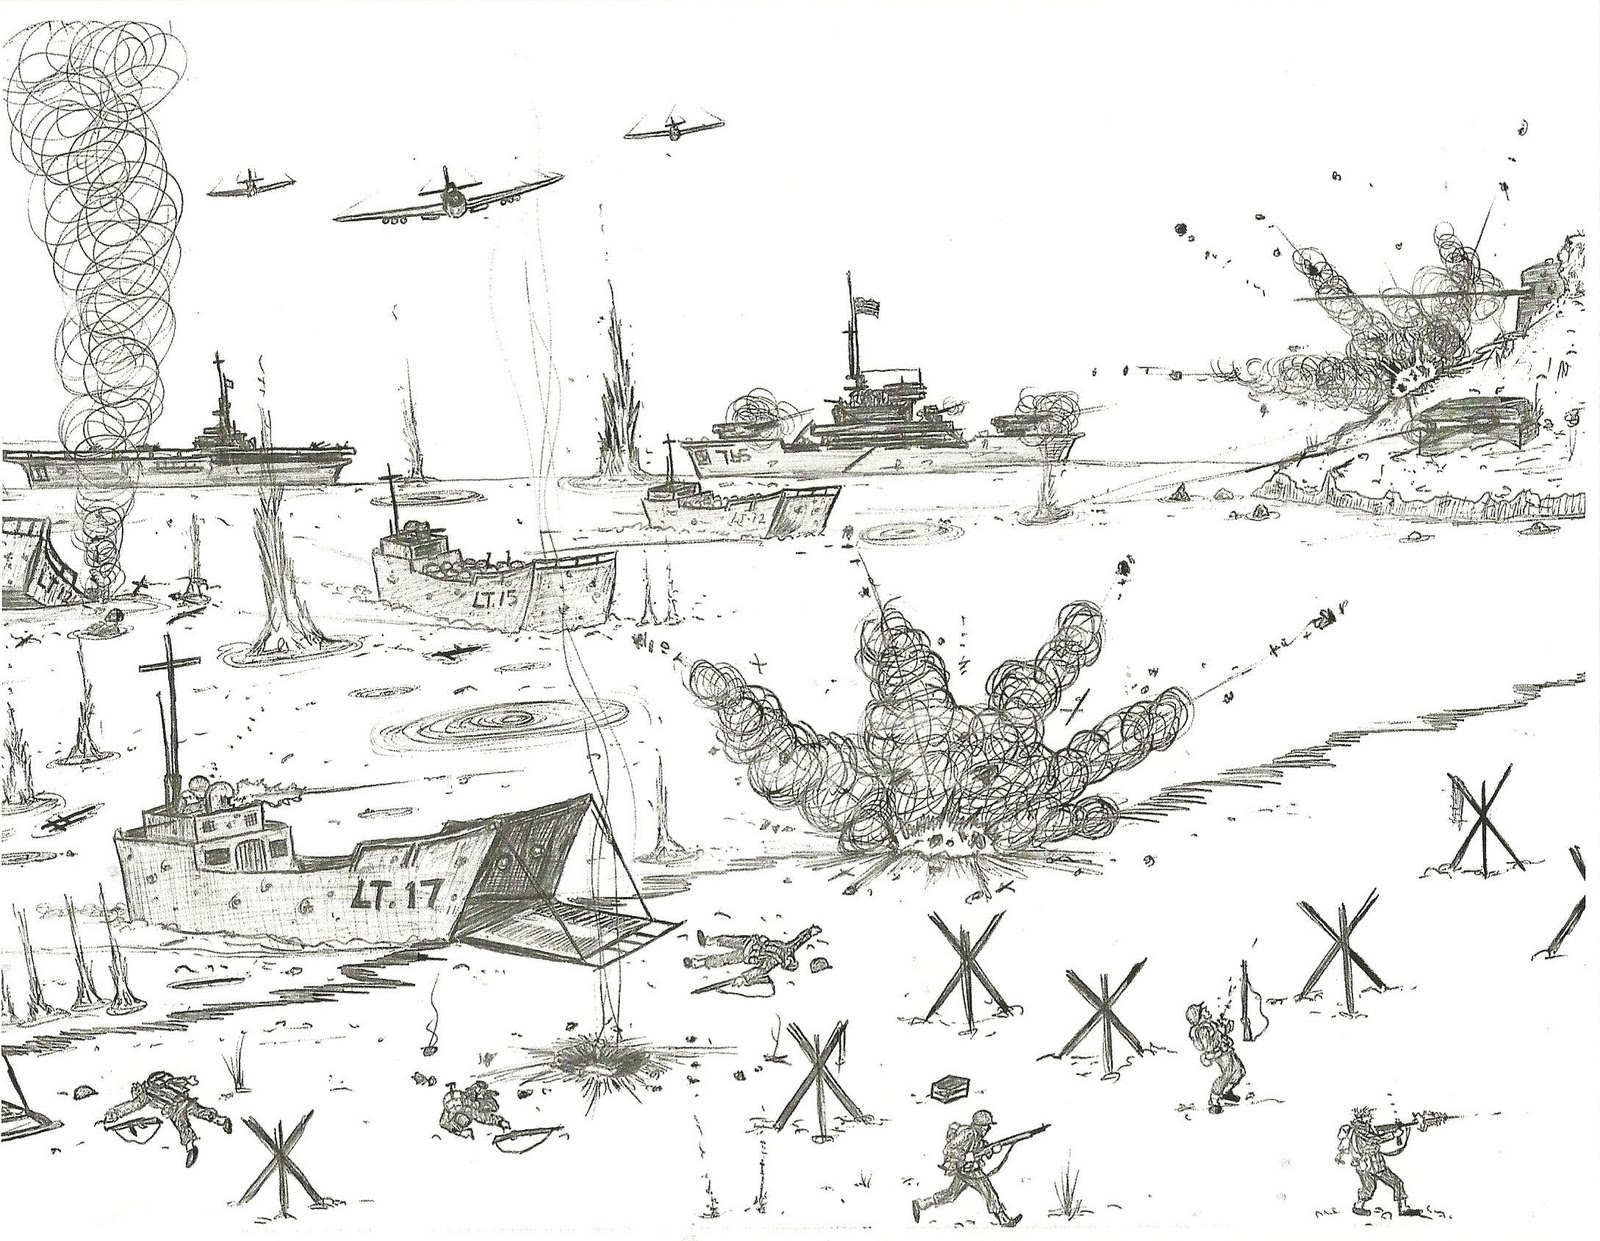 World Of Technology: Drawings of WWII by a Ten Year Old